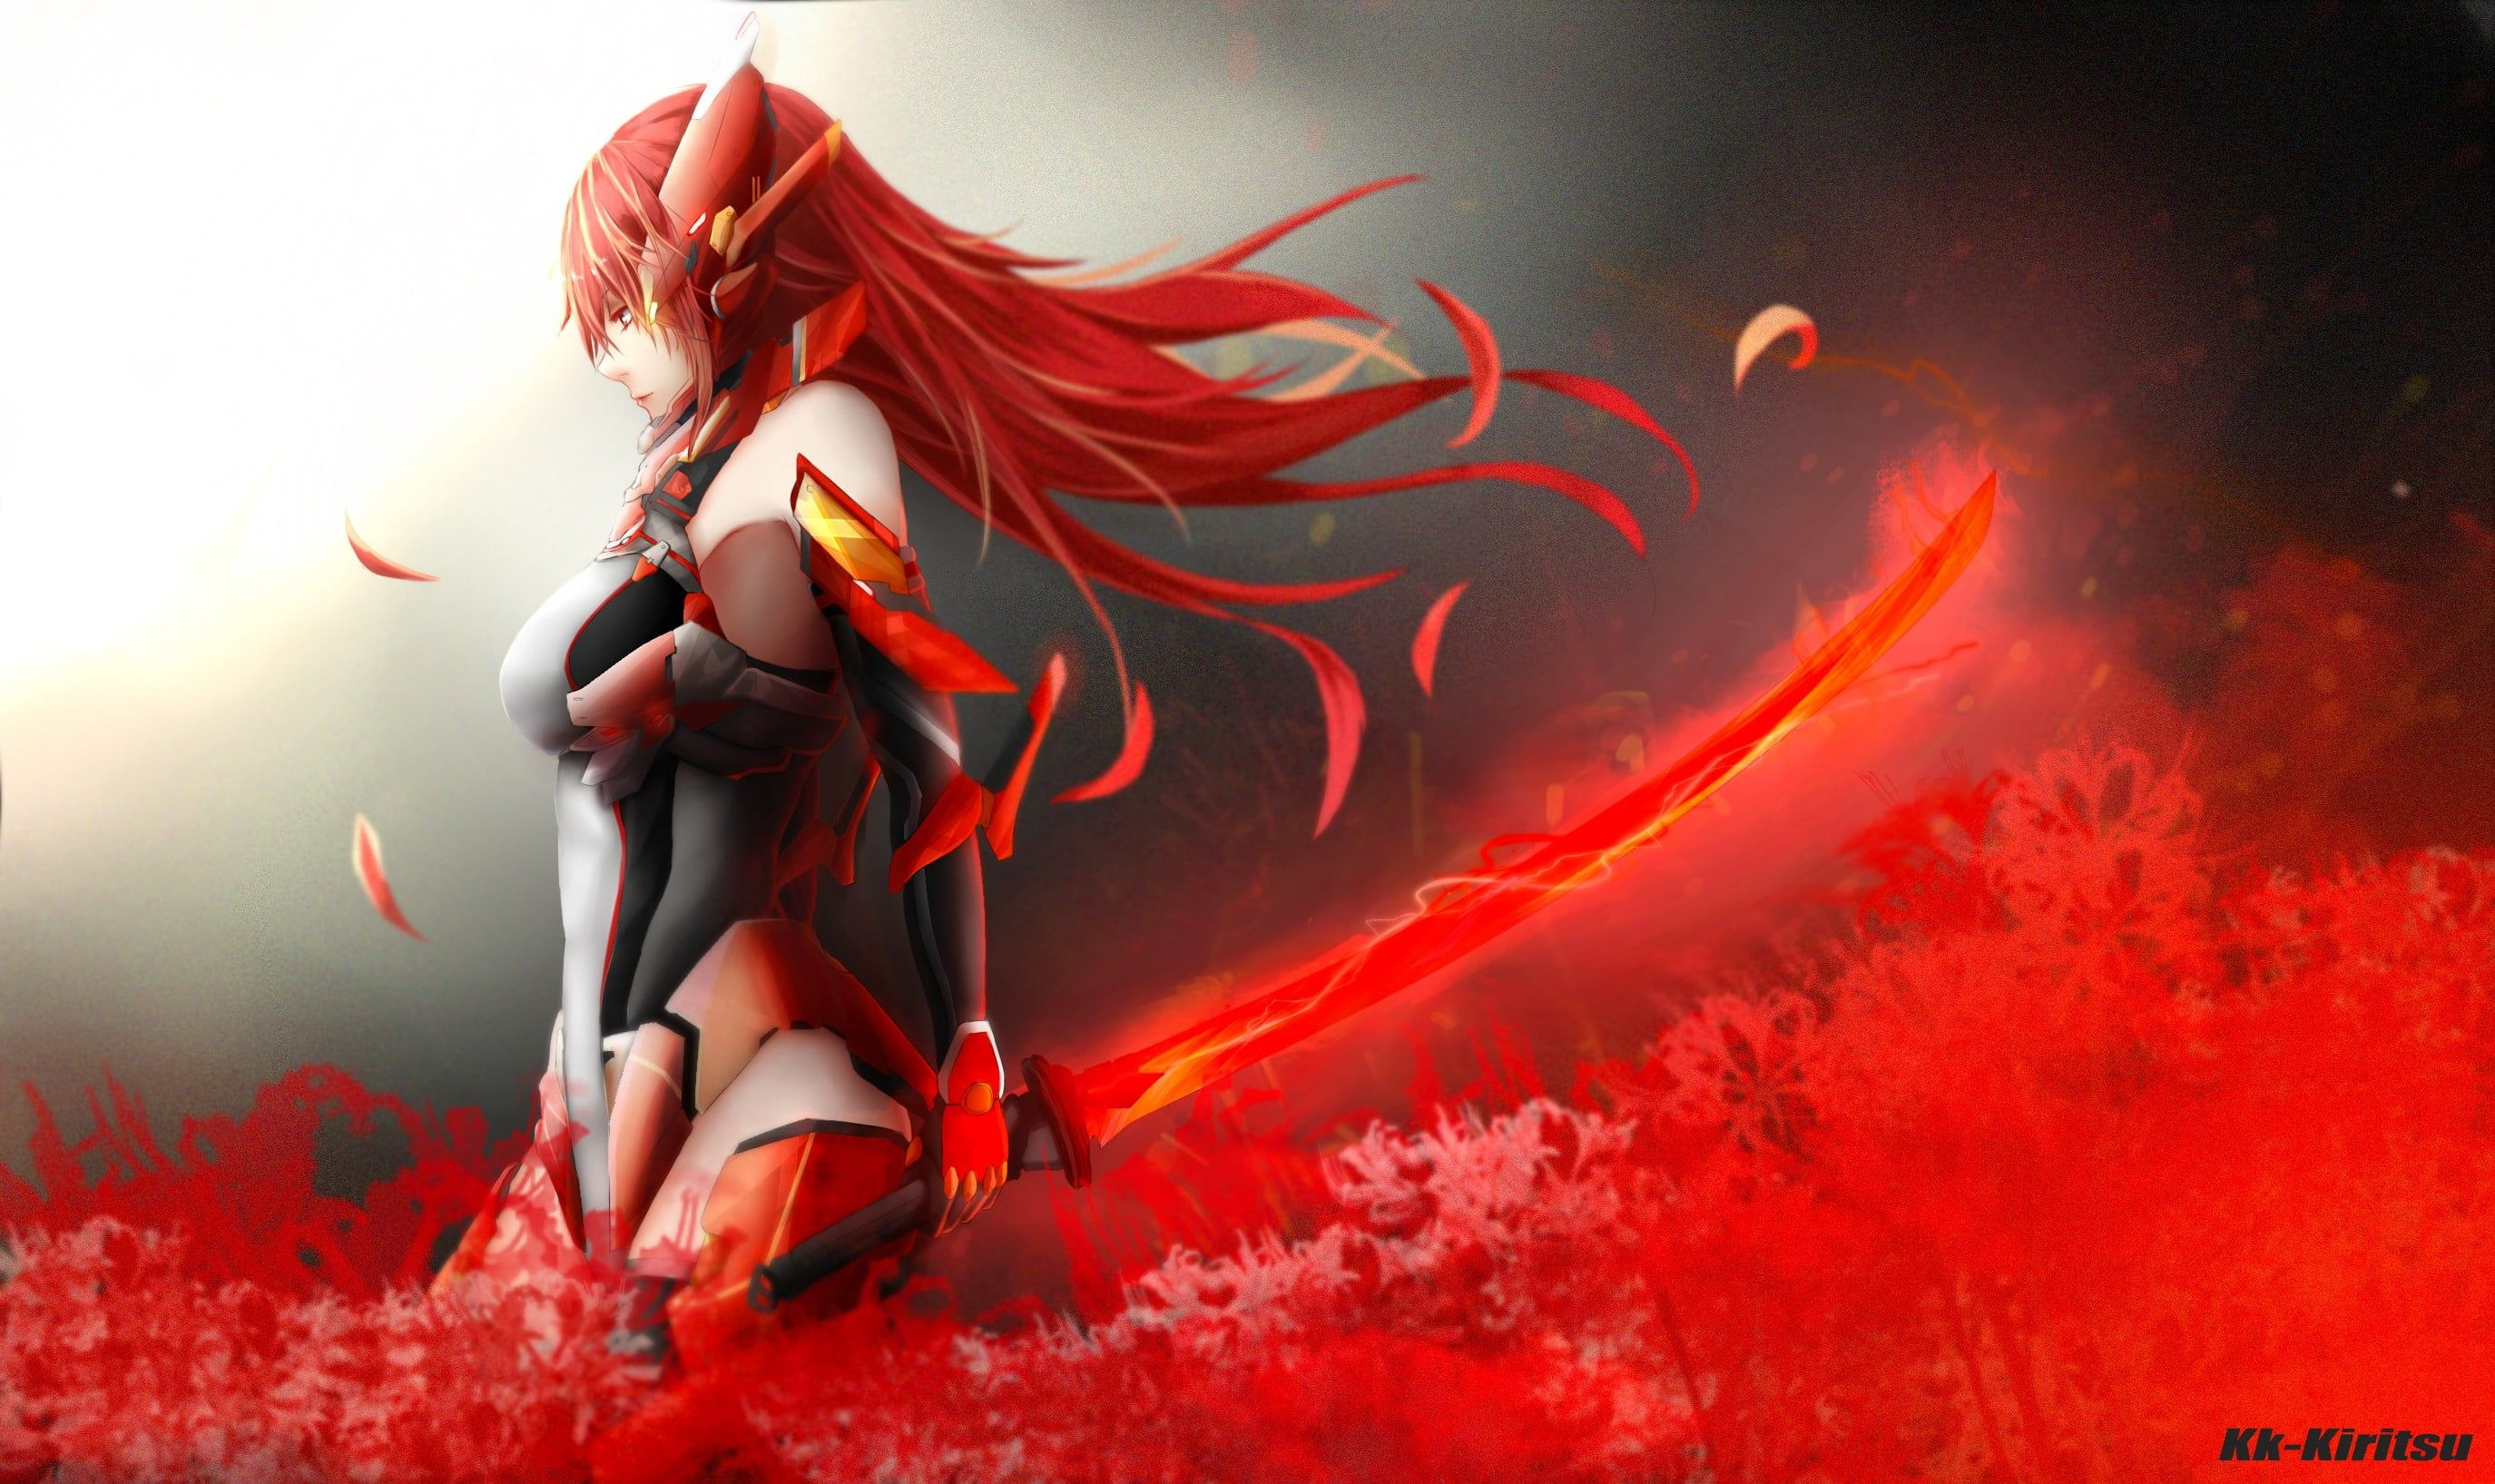 Pin On Anime Anime red wallpaper 1920x1080